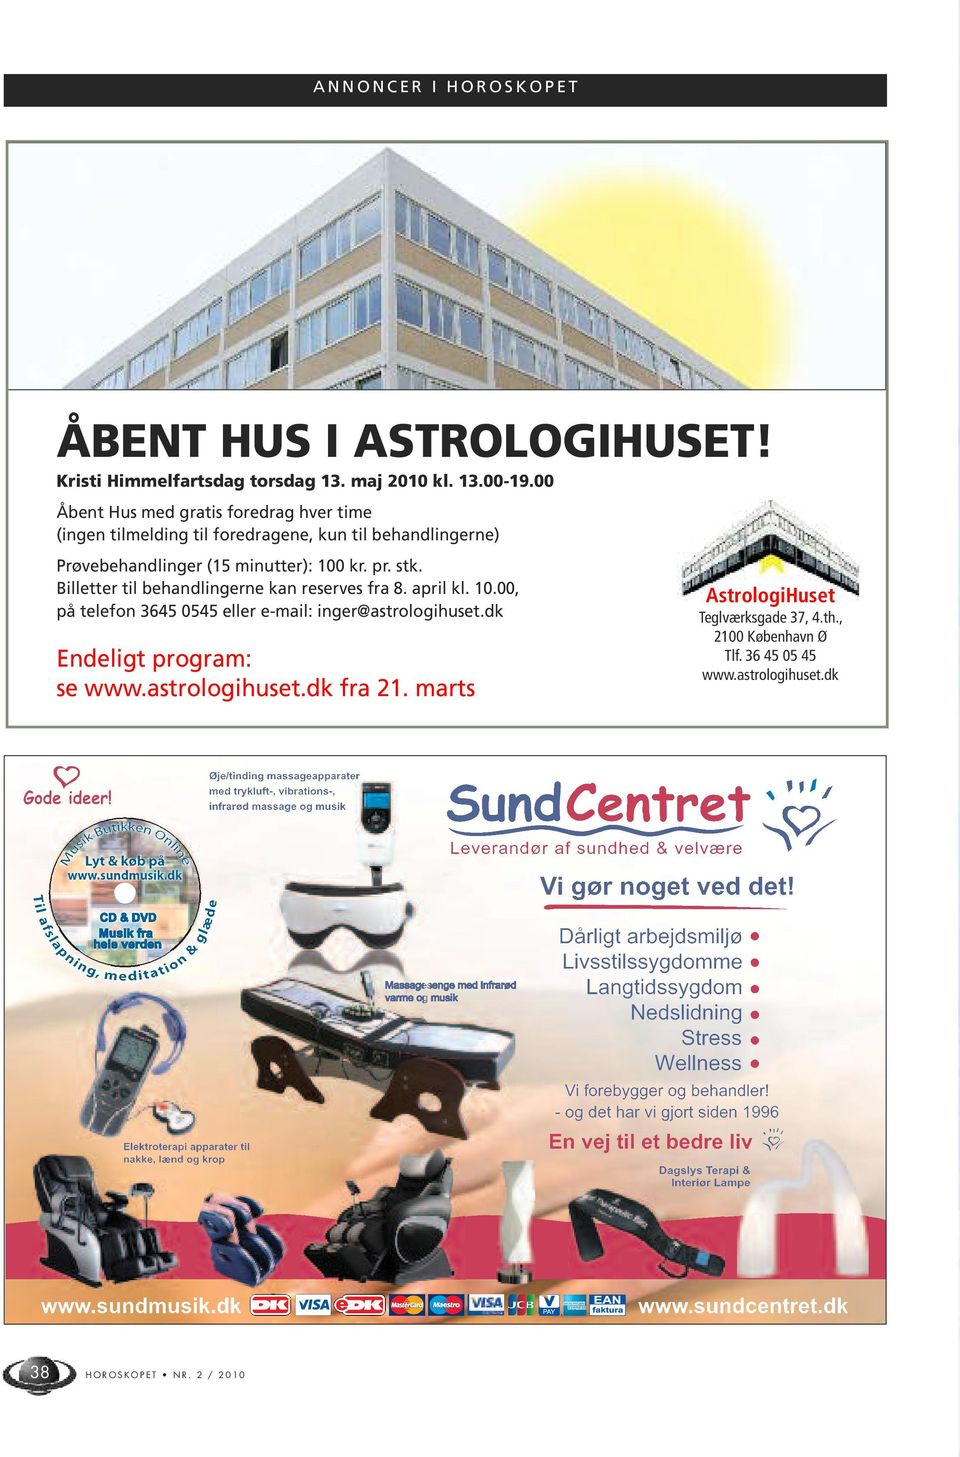 stk. Billetter til behandlingerne kan reserves fra 8. april kl. 10.00, på telefon 3645 0545 eller e-mail: inger@astrologihuset.